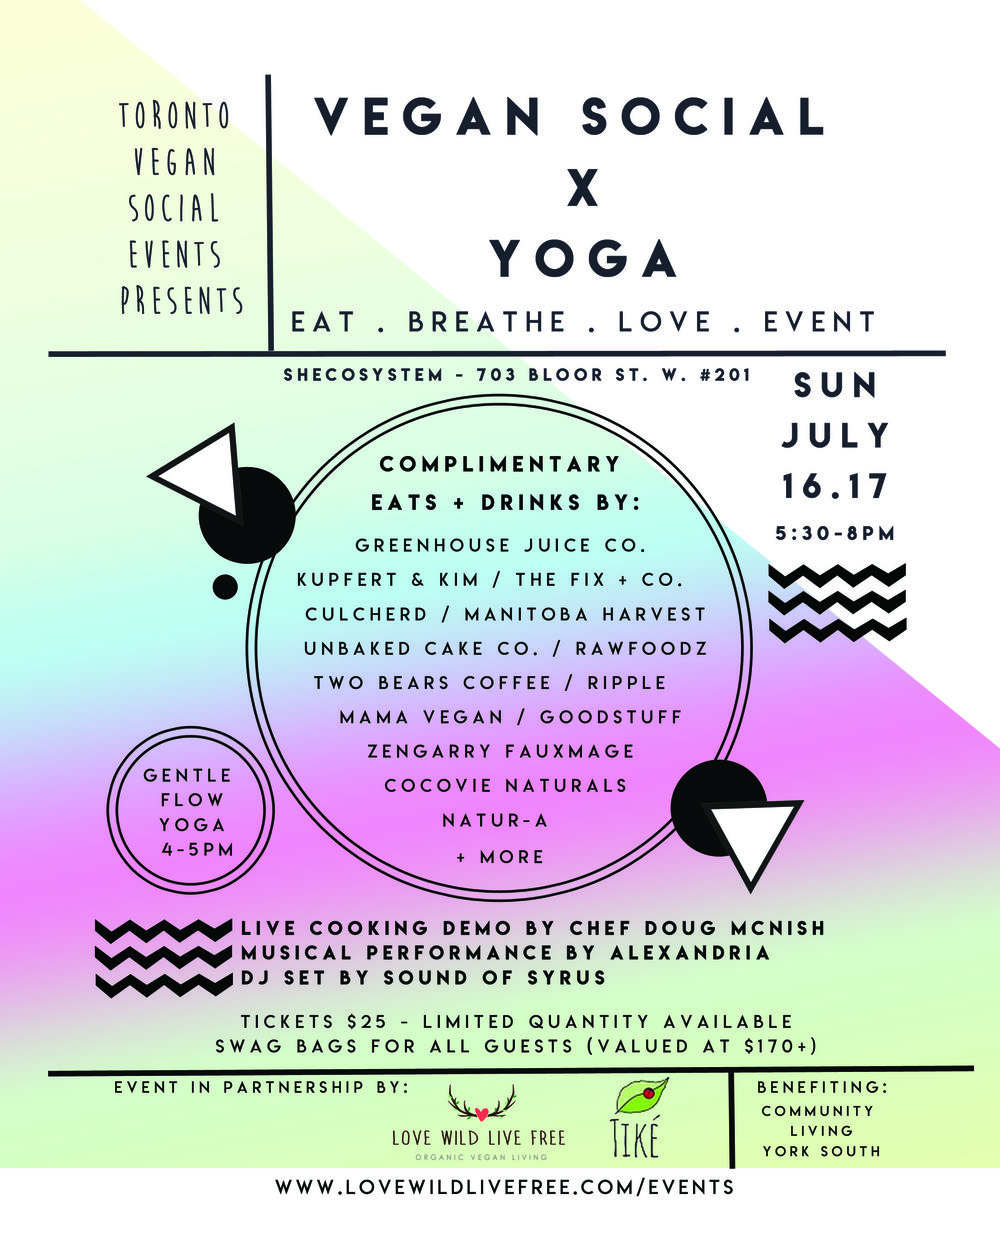 https://www.eventbrite.ca/e/yoga-toronto-vegan-social-event-eat-breathe-love-tickets-35638347256